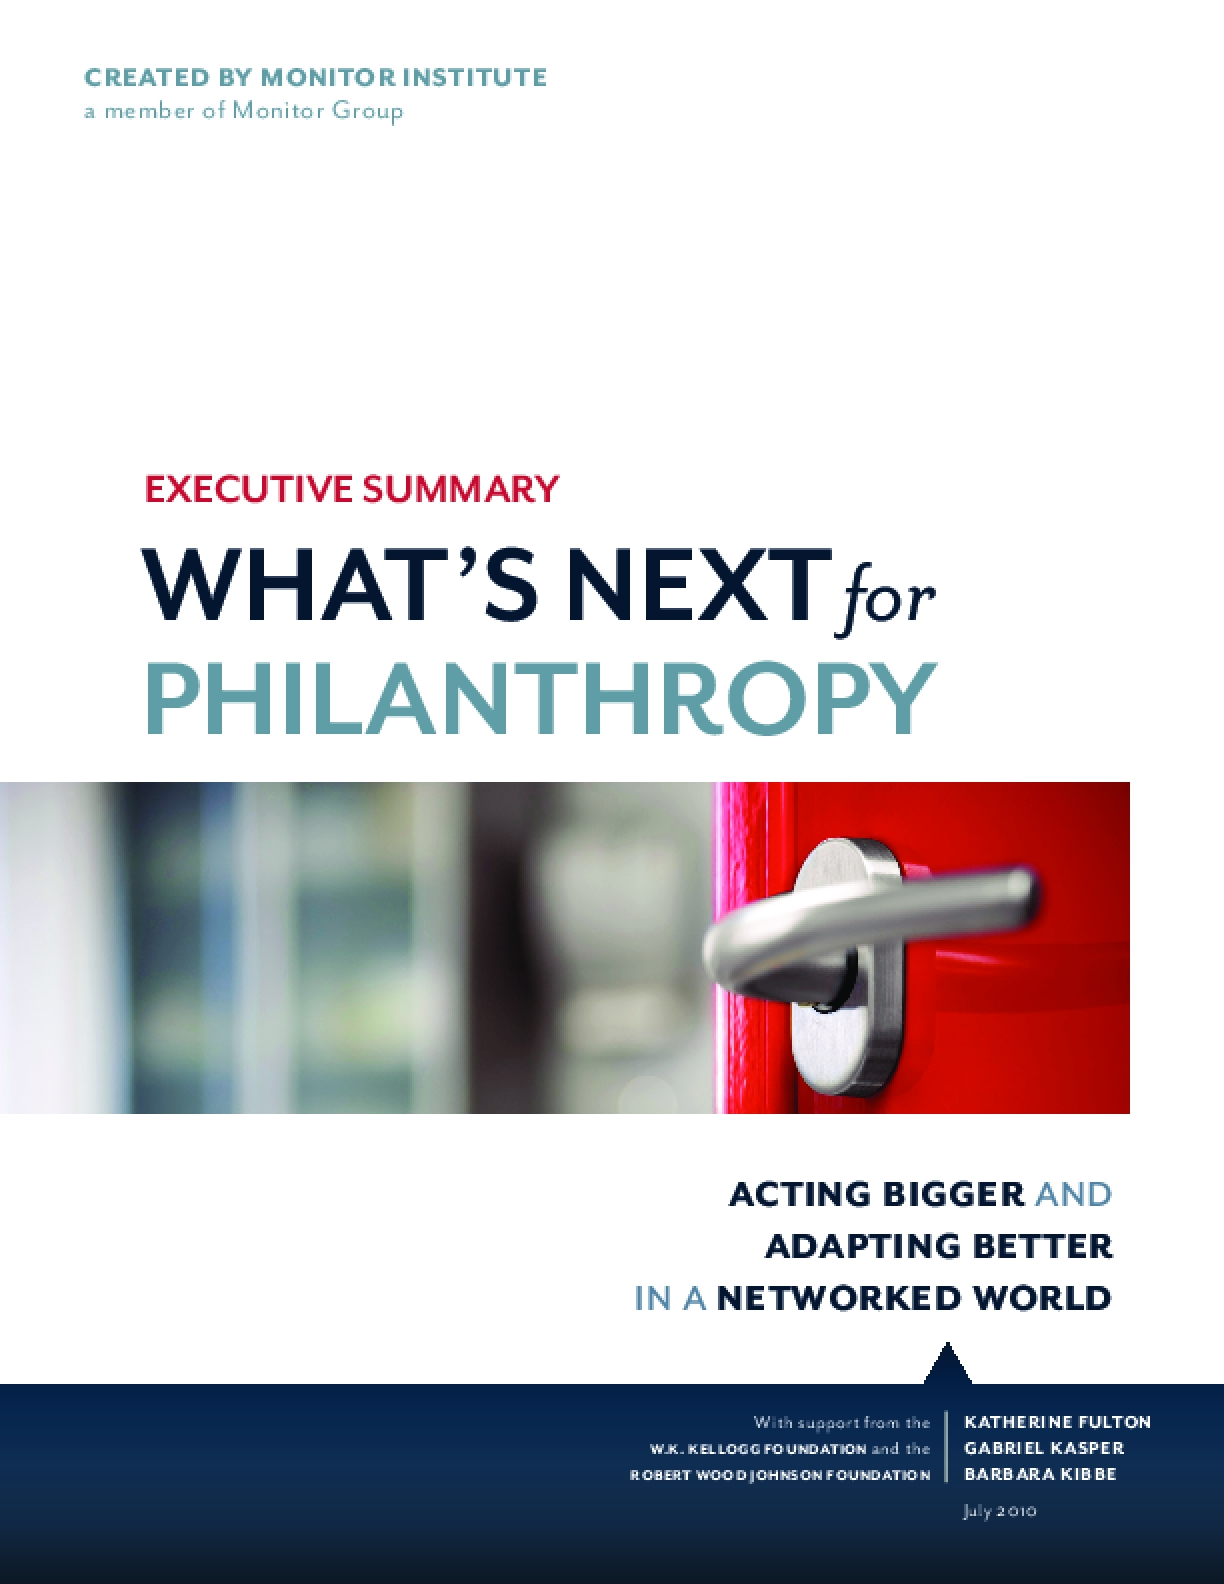 What's Next for Philanthropy: Acting Bigger and Adapting Better in a Networked World (Executive Summary)